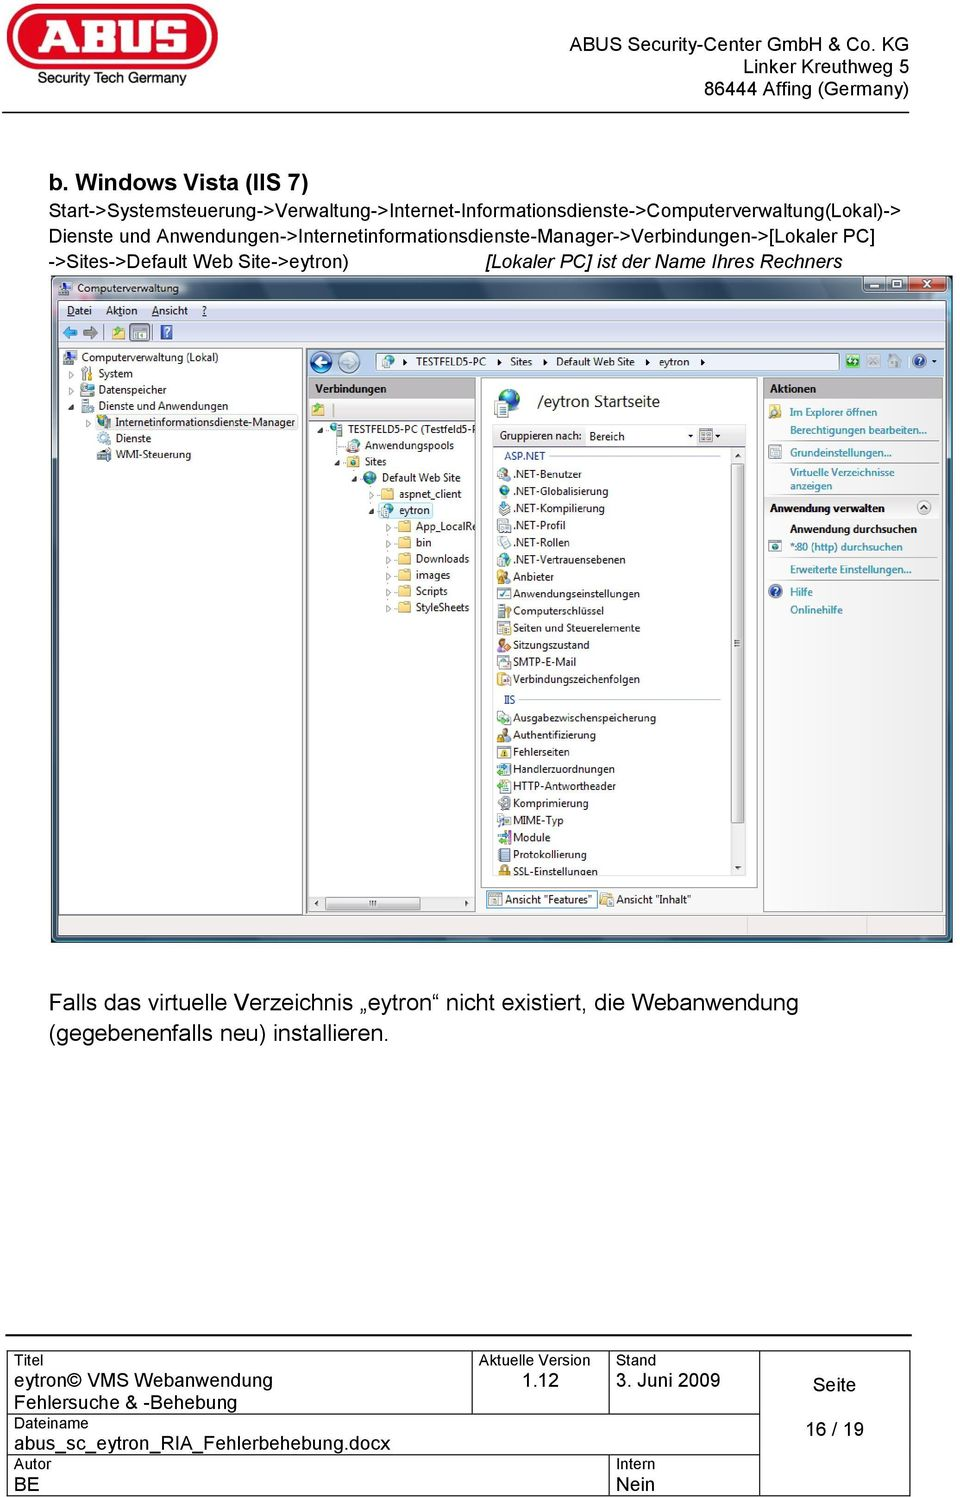 und Anwendungen->etinformationsdienste-Manager->Verbindungen->[Lokaler PC] ->Sites->Default Web